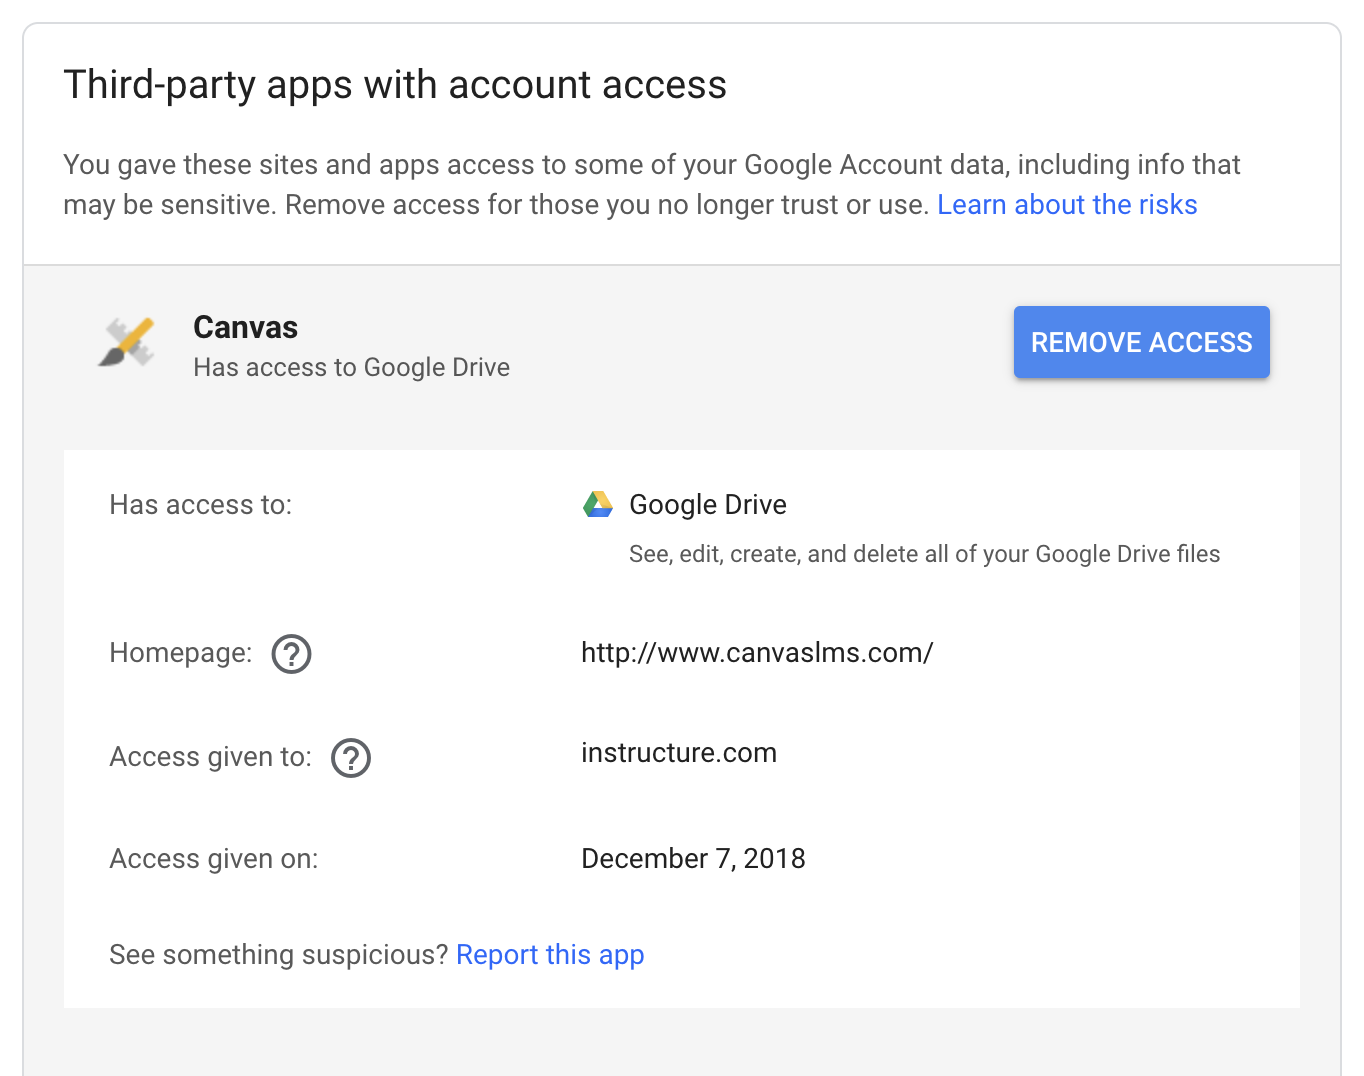 Third party apps with account access menu